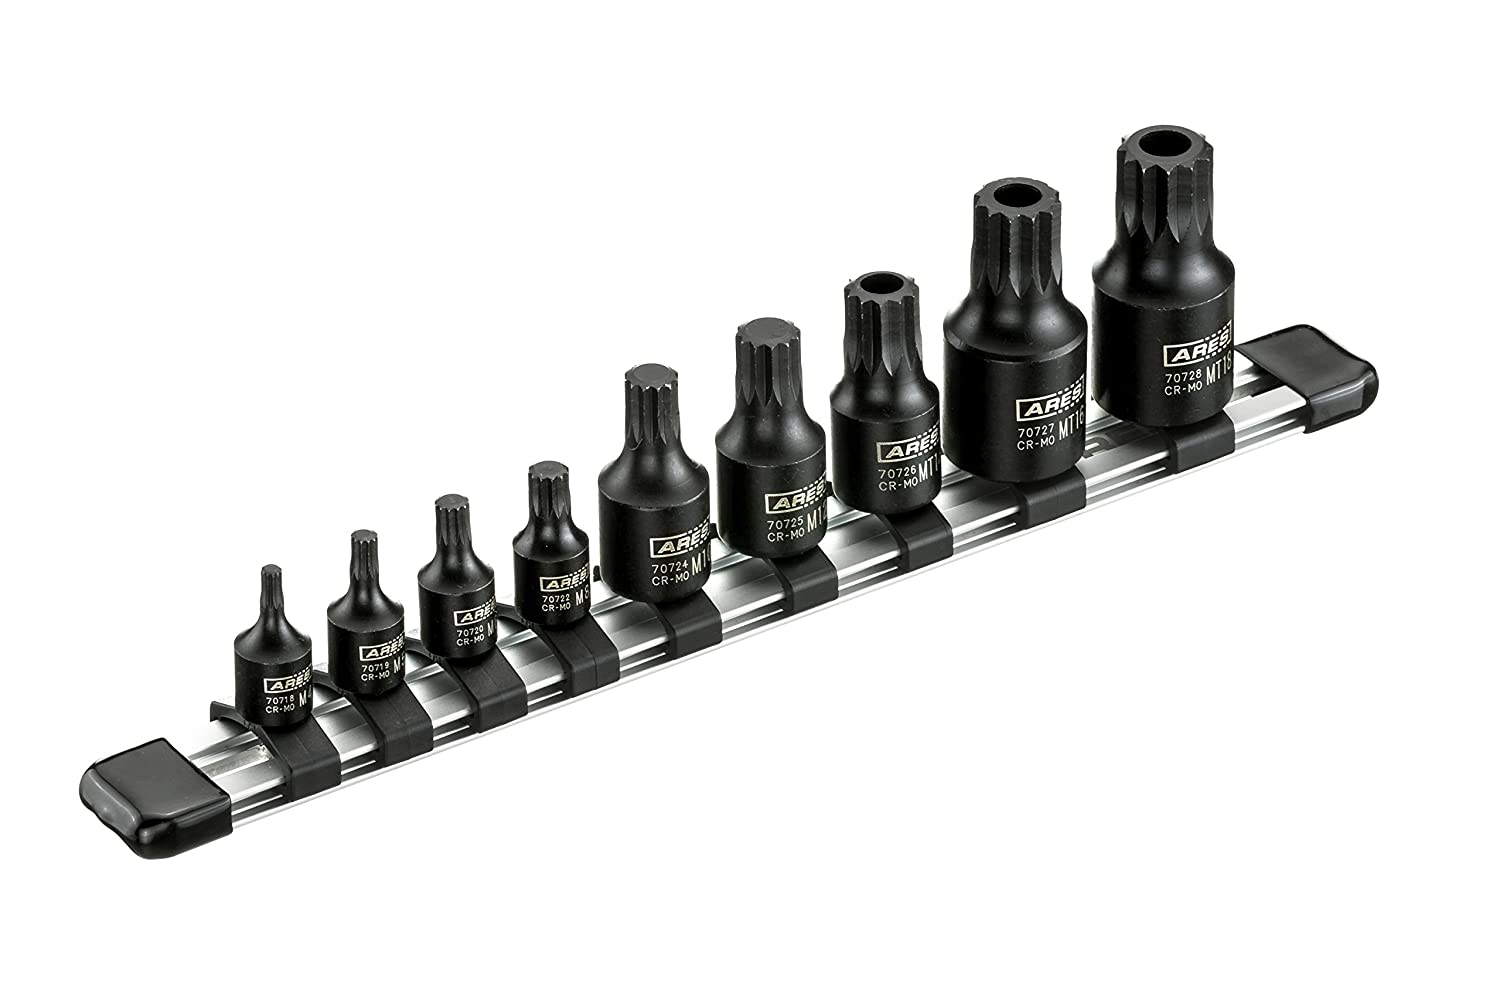 ARES 70610 | 10-Piece Low Profile Impact Stubby Star Bit Socket Set | Chrome-Moly Steel and Manganese Phosphate Coating Designed for Impact Use | Sizes Range from T10 to T50 on a Reusable Storage Rail